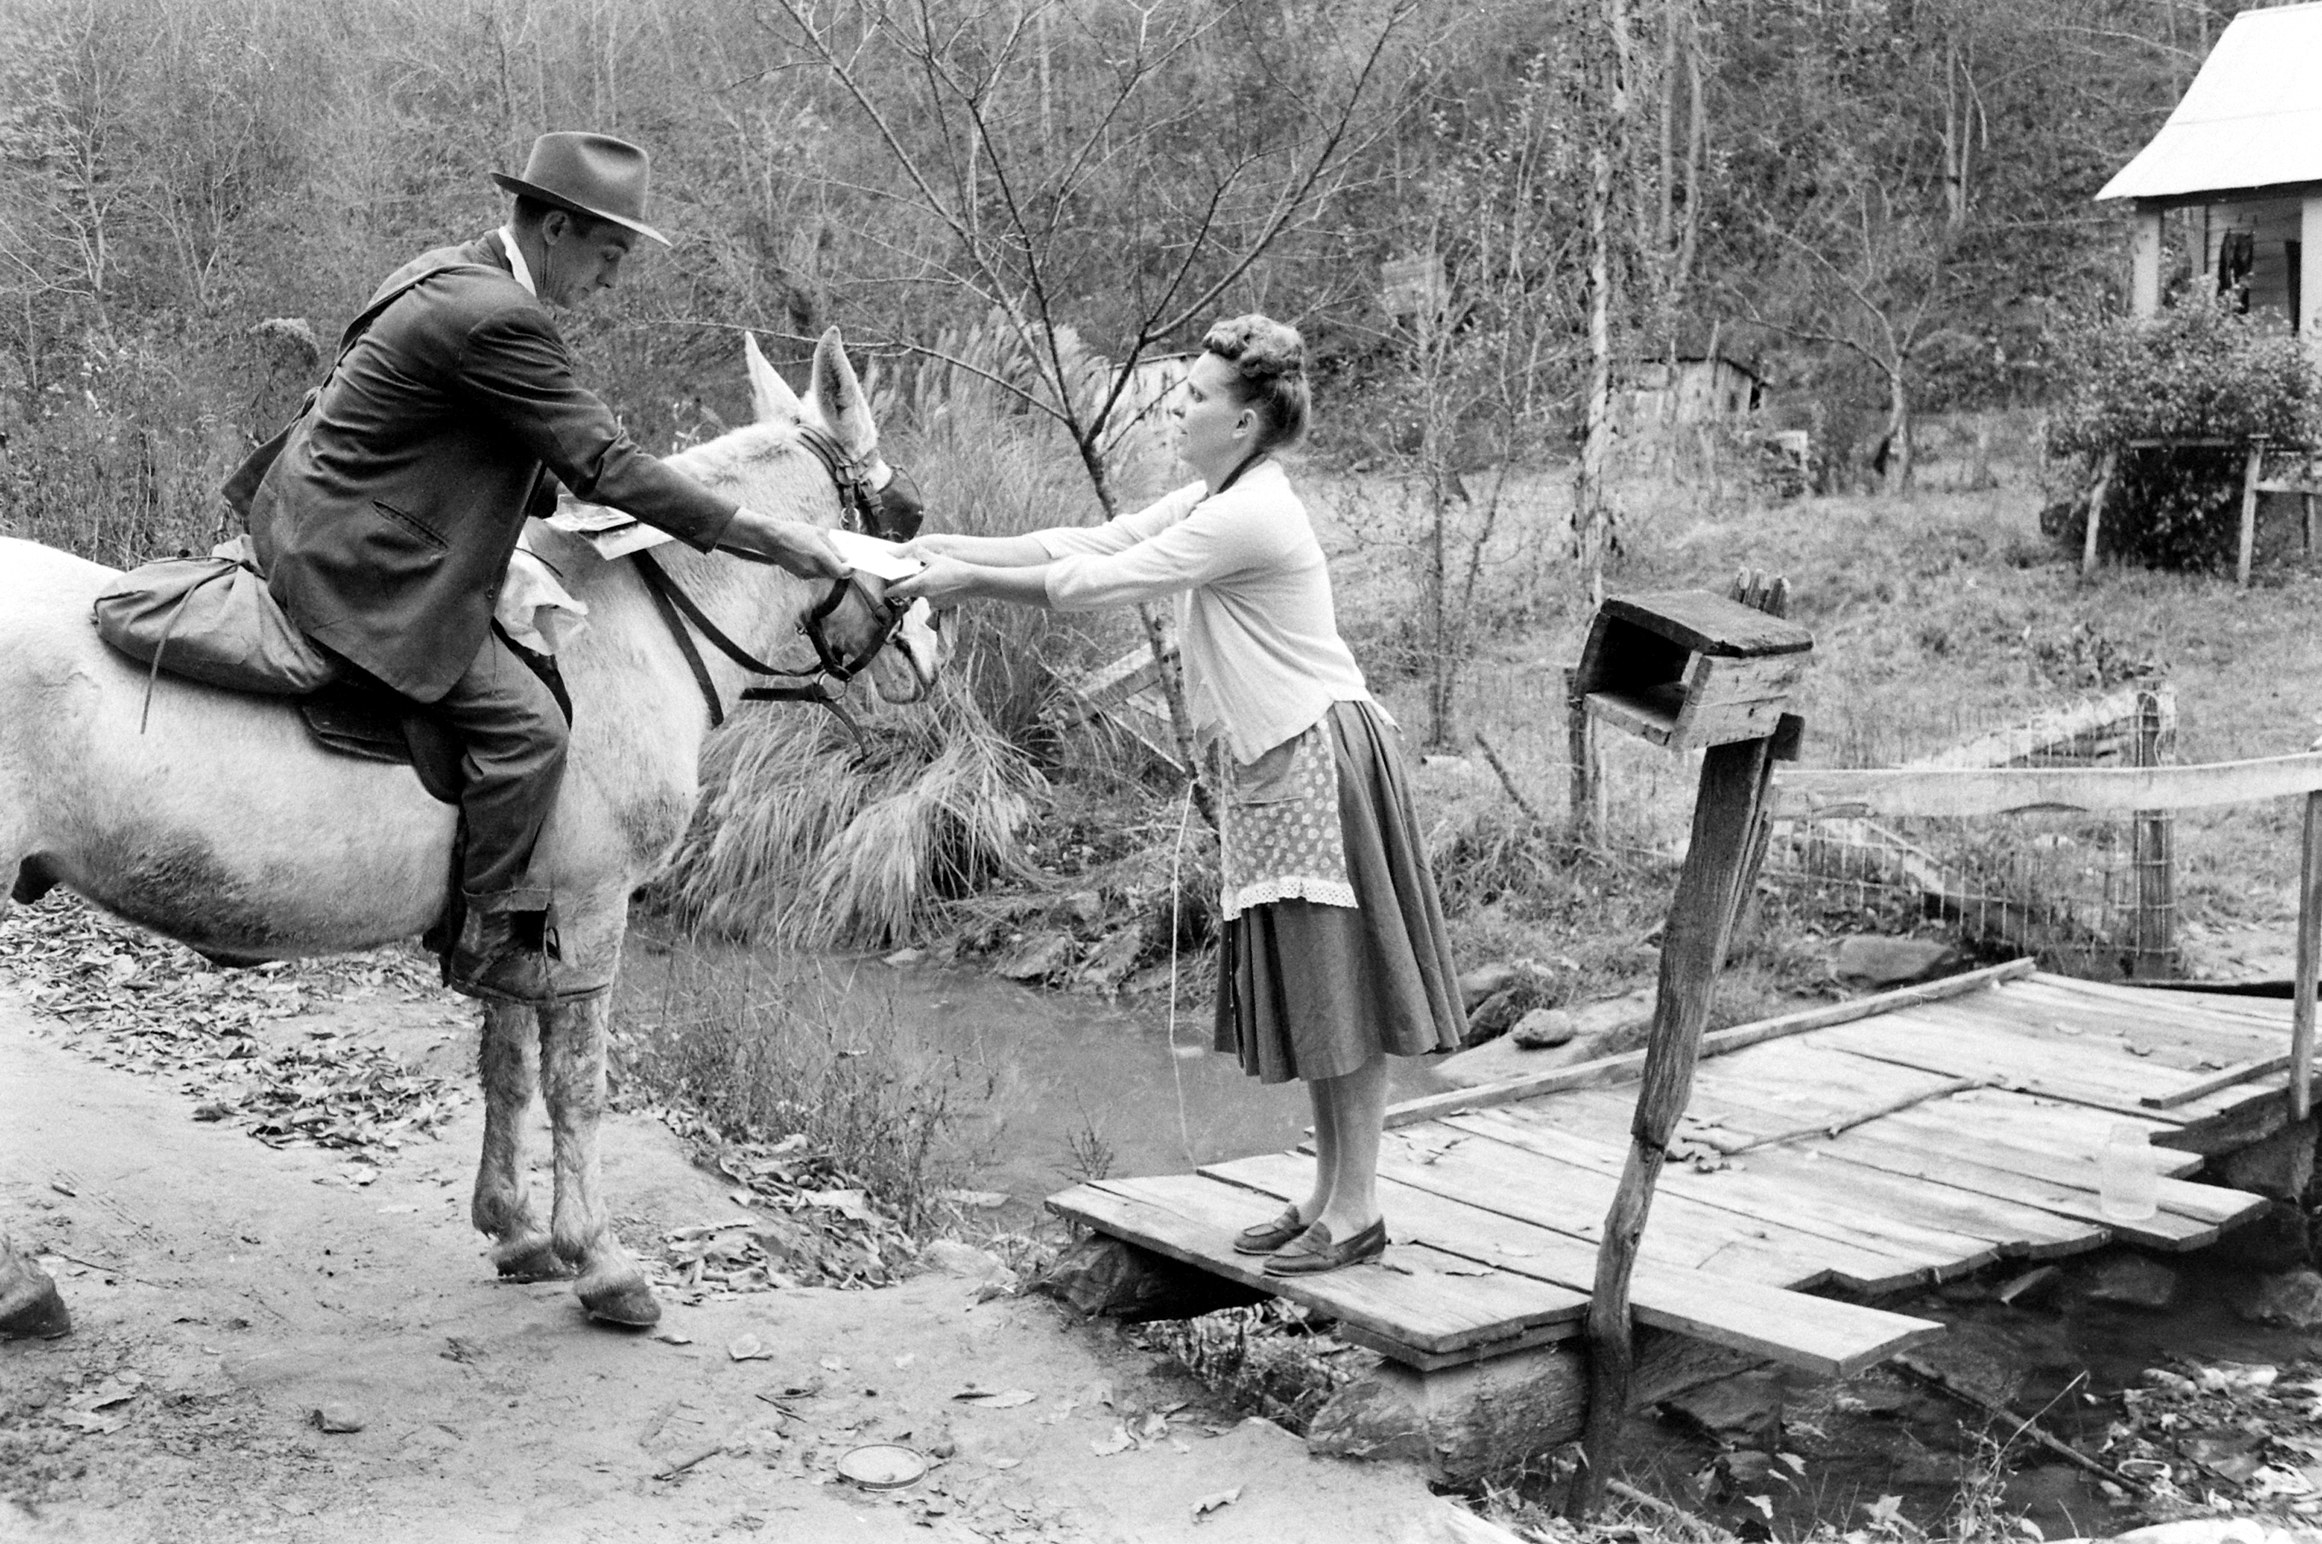 A man on horseback hands a letter to a woman in a dress and apron standing on a wooden bridge